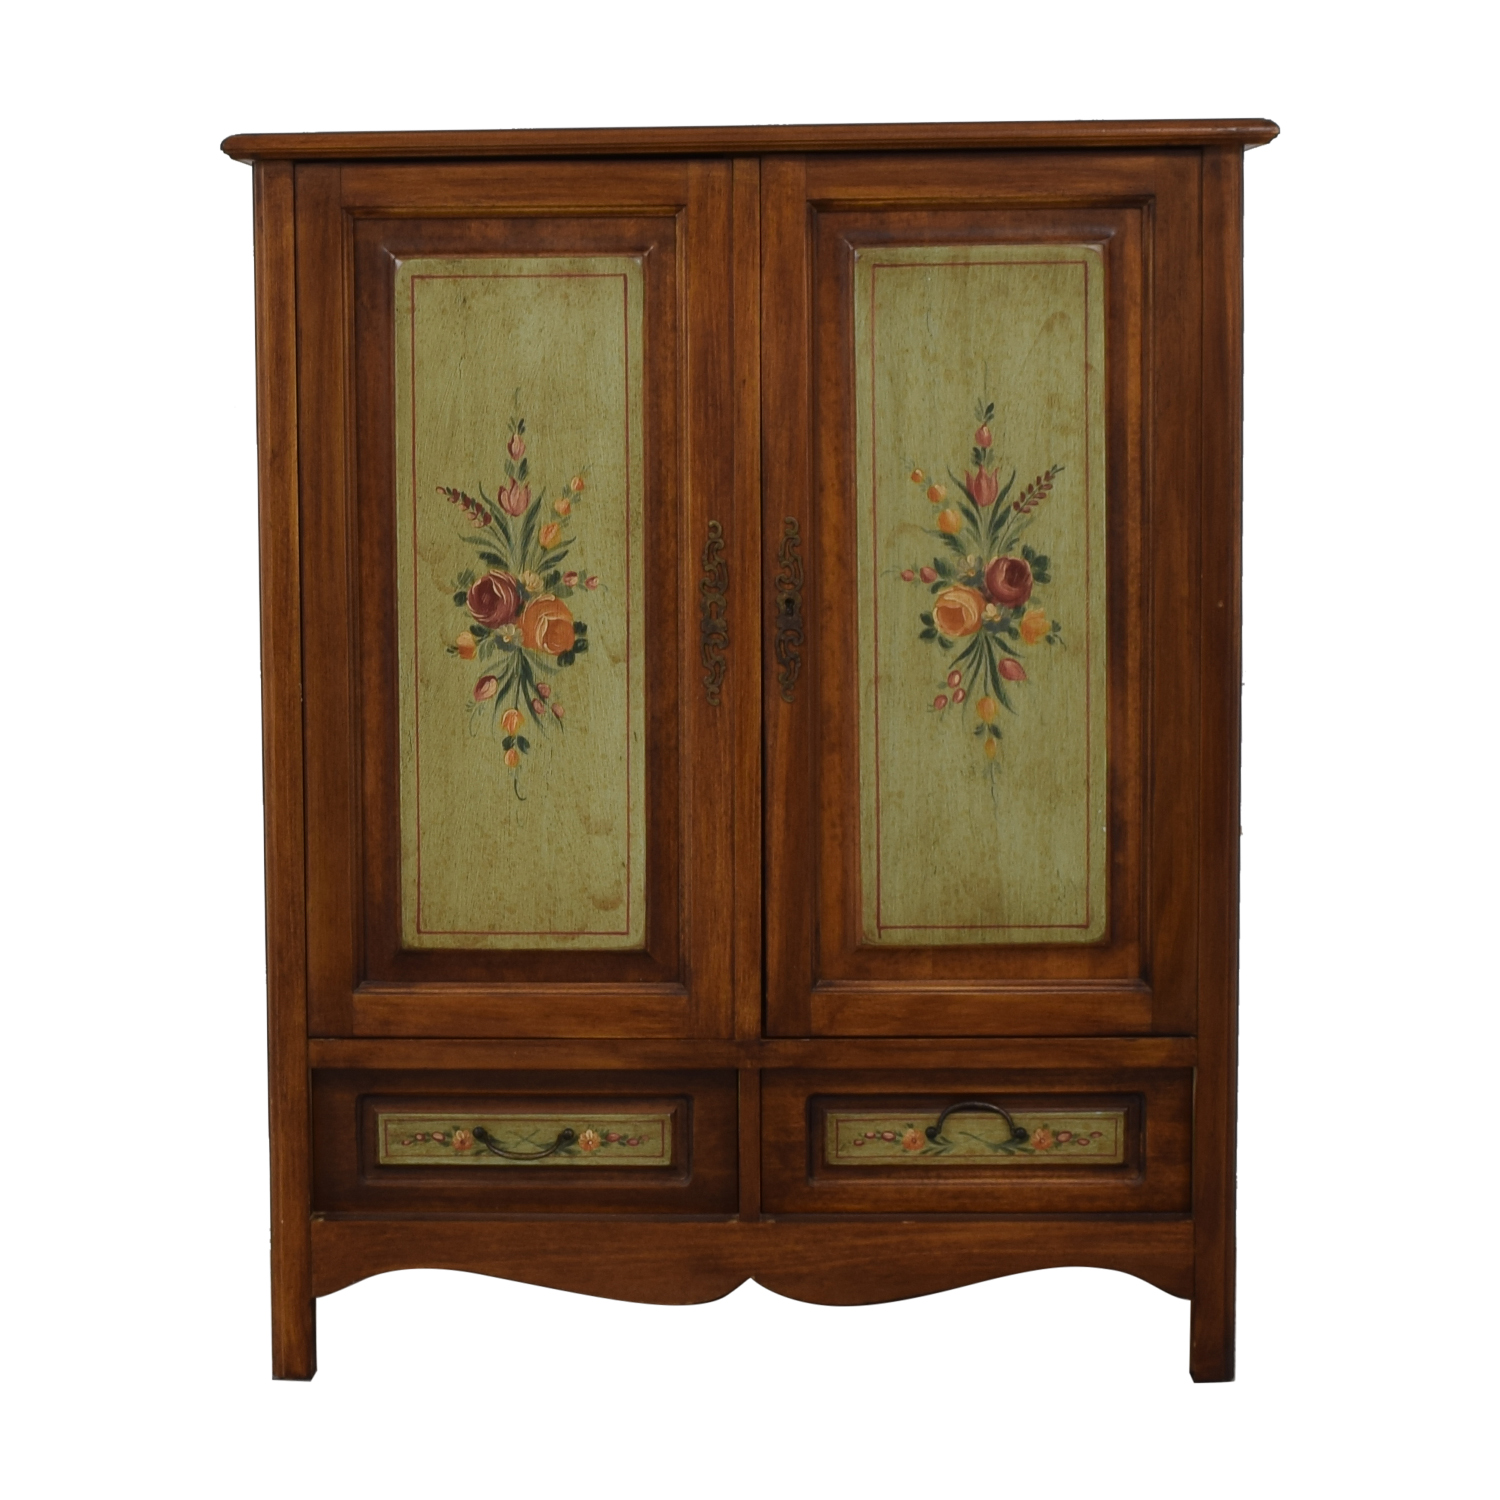 Domain Walnut French Antique Floral Painted Media Cabinet with Drawers / Storage